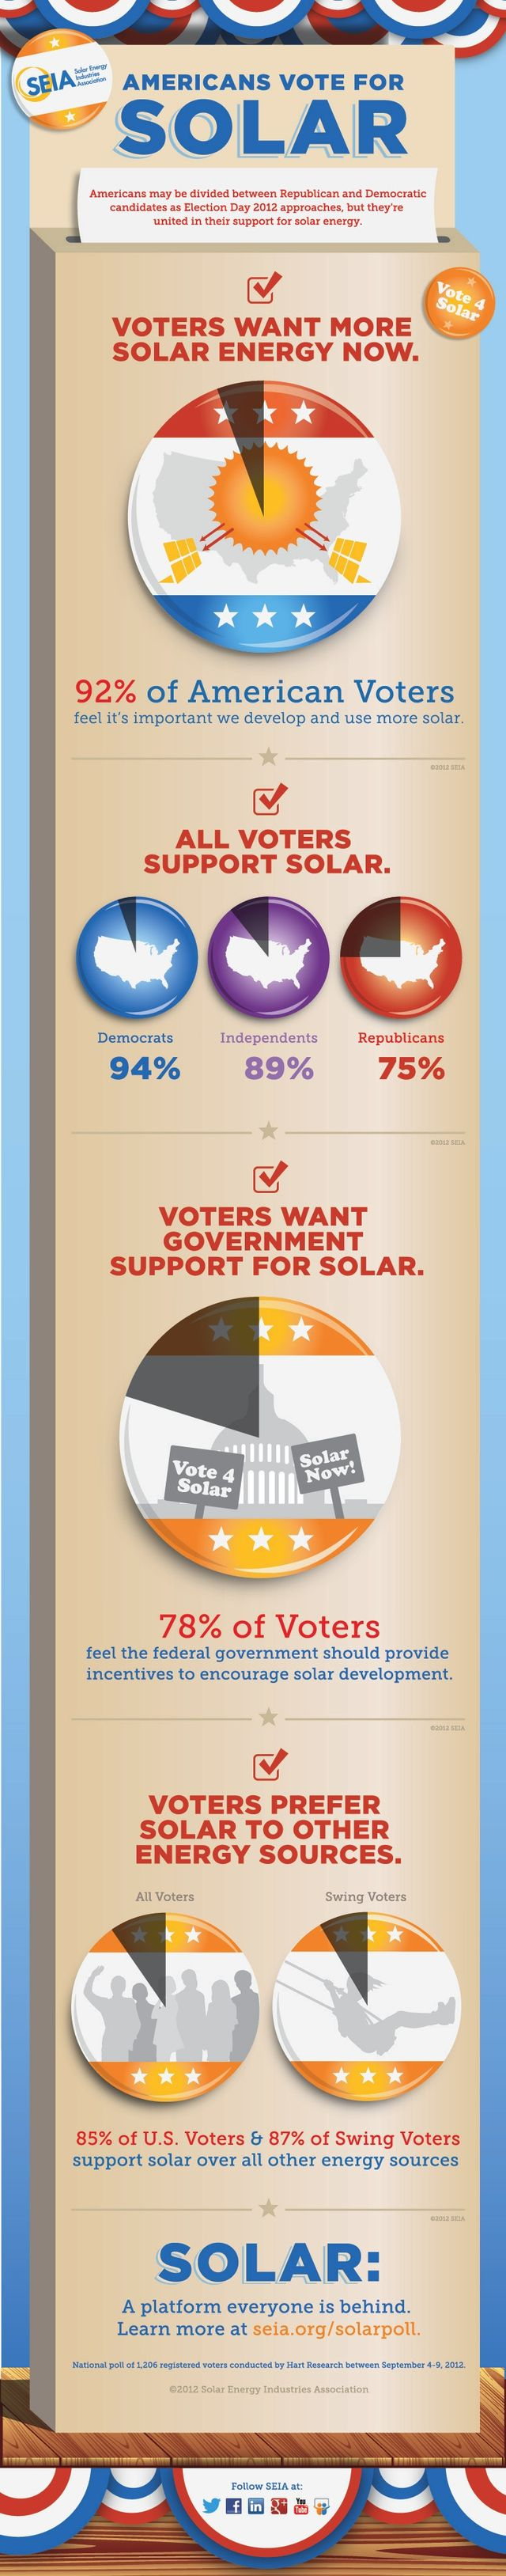 92 percent of American Voters feel it is important we develop and use more solar power